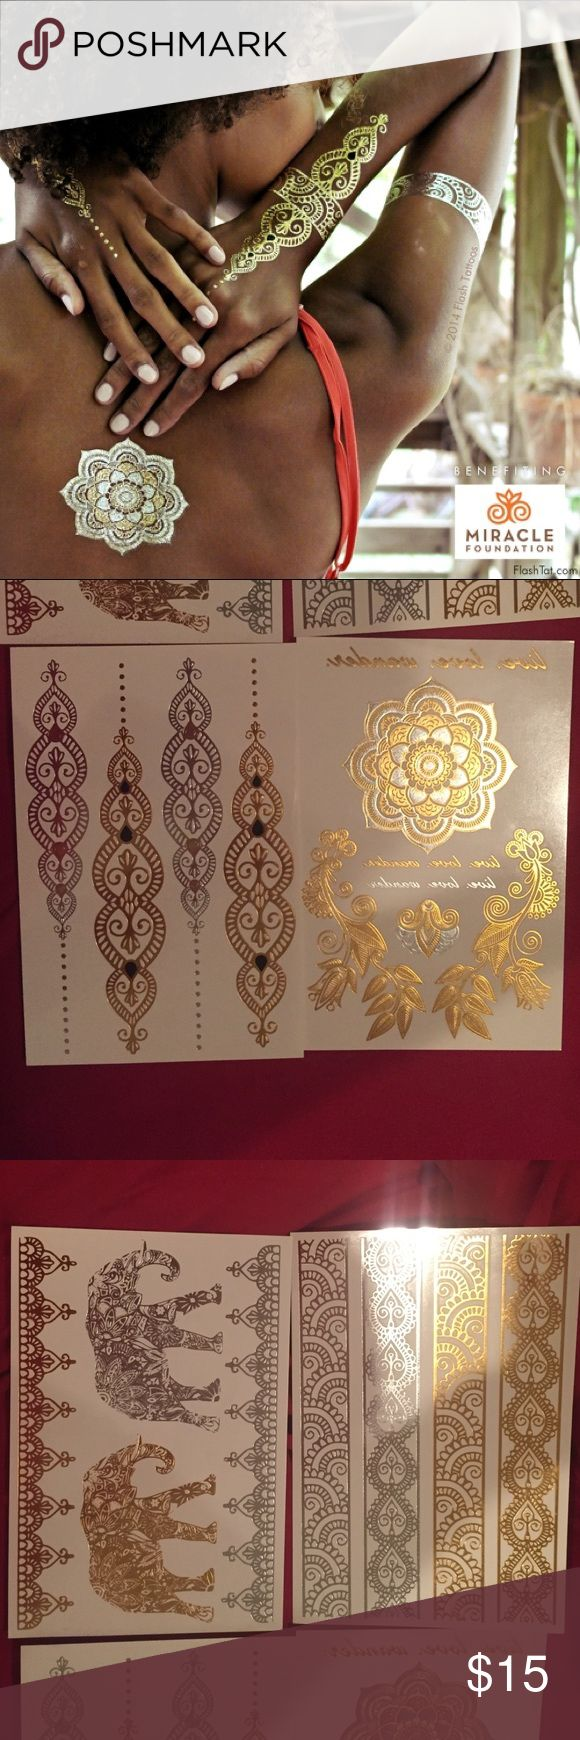 Sheebani Flash Tattoos Box has been opened but comes with. All four sheets with all tattoos. Perfect new condition. Flash Tattoo Makeup